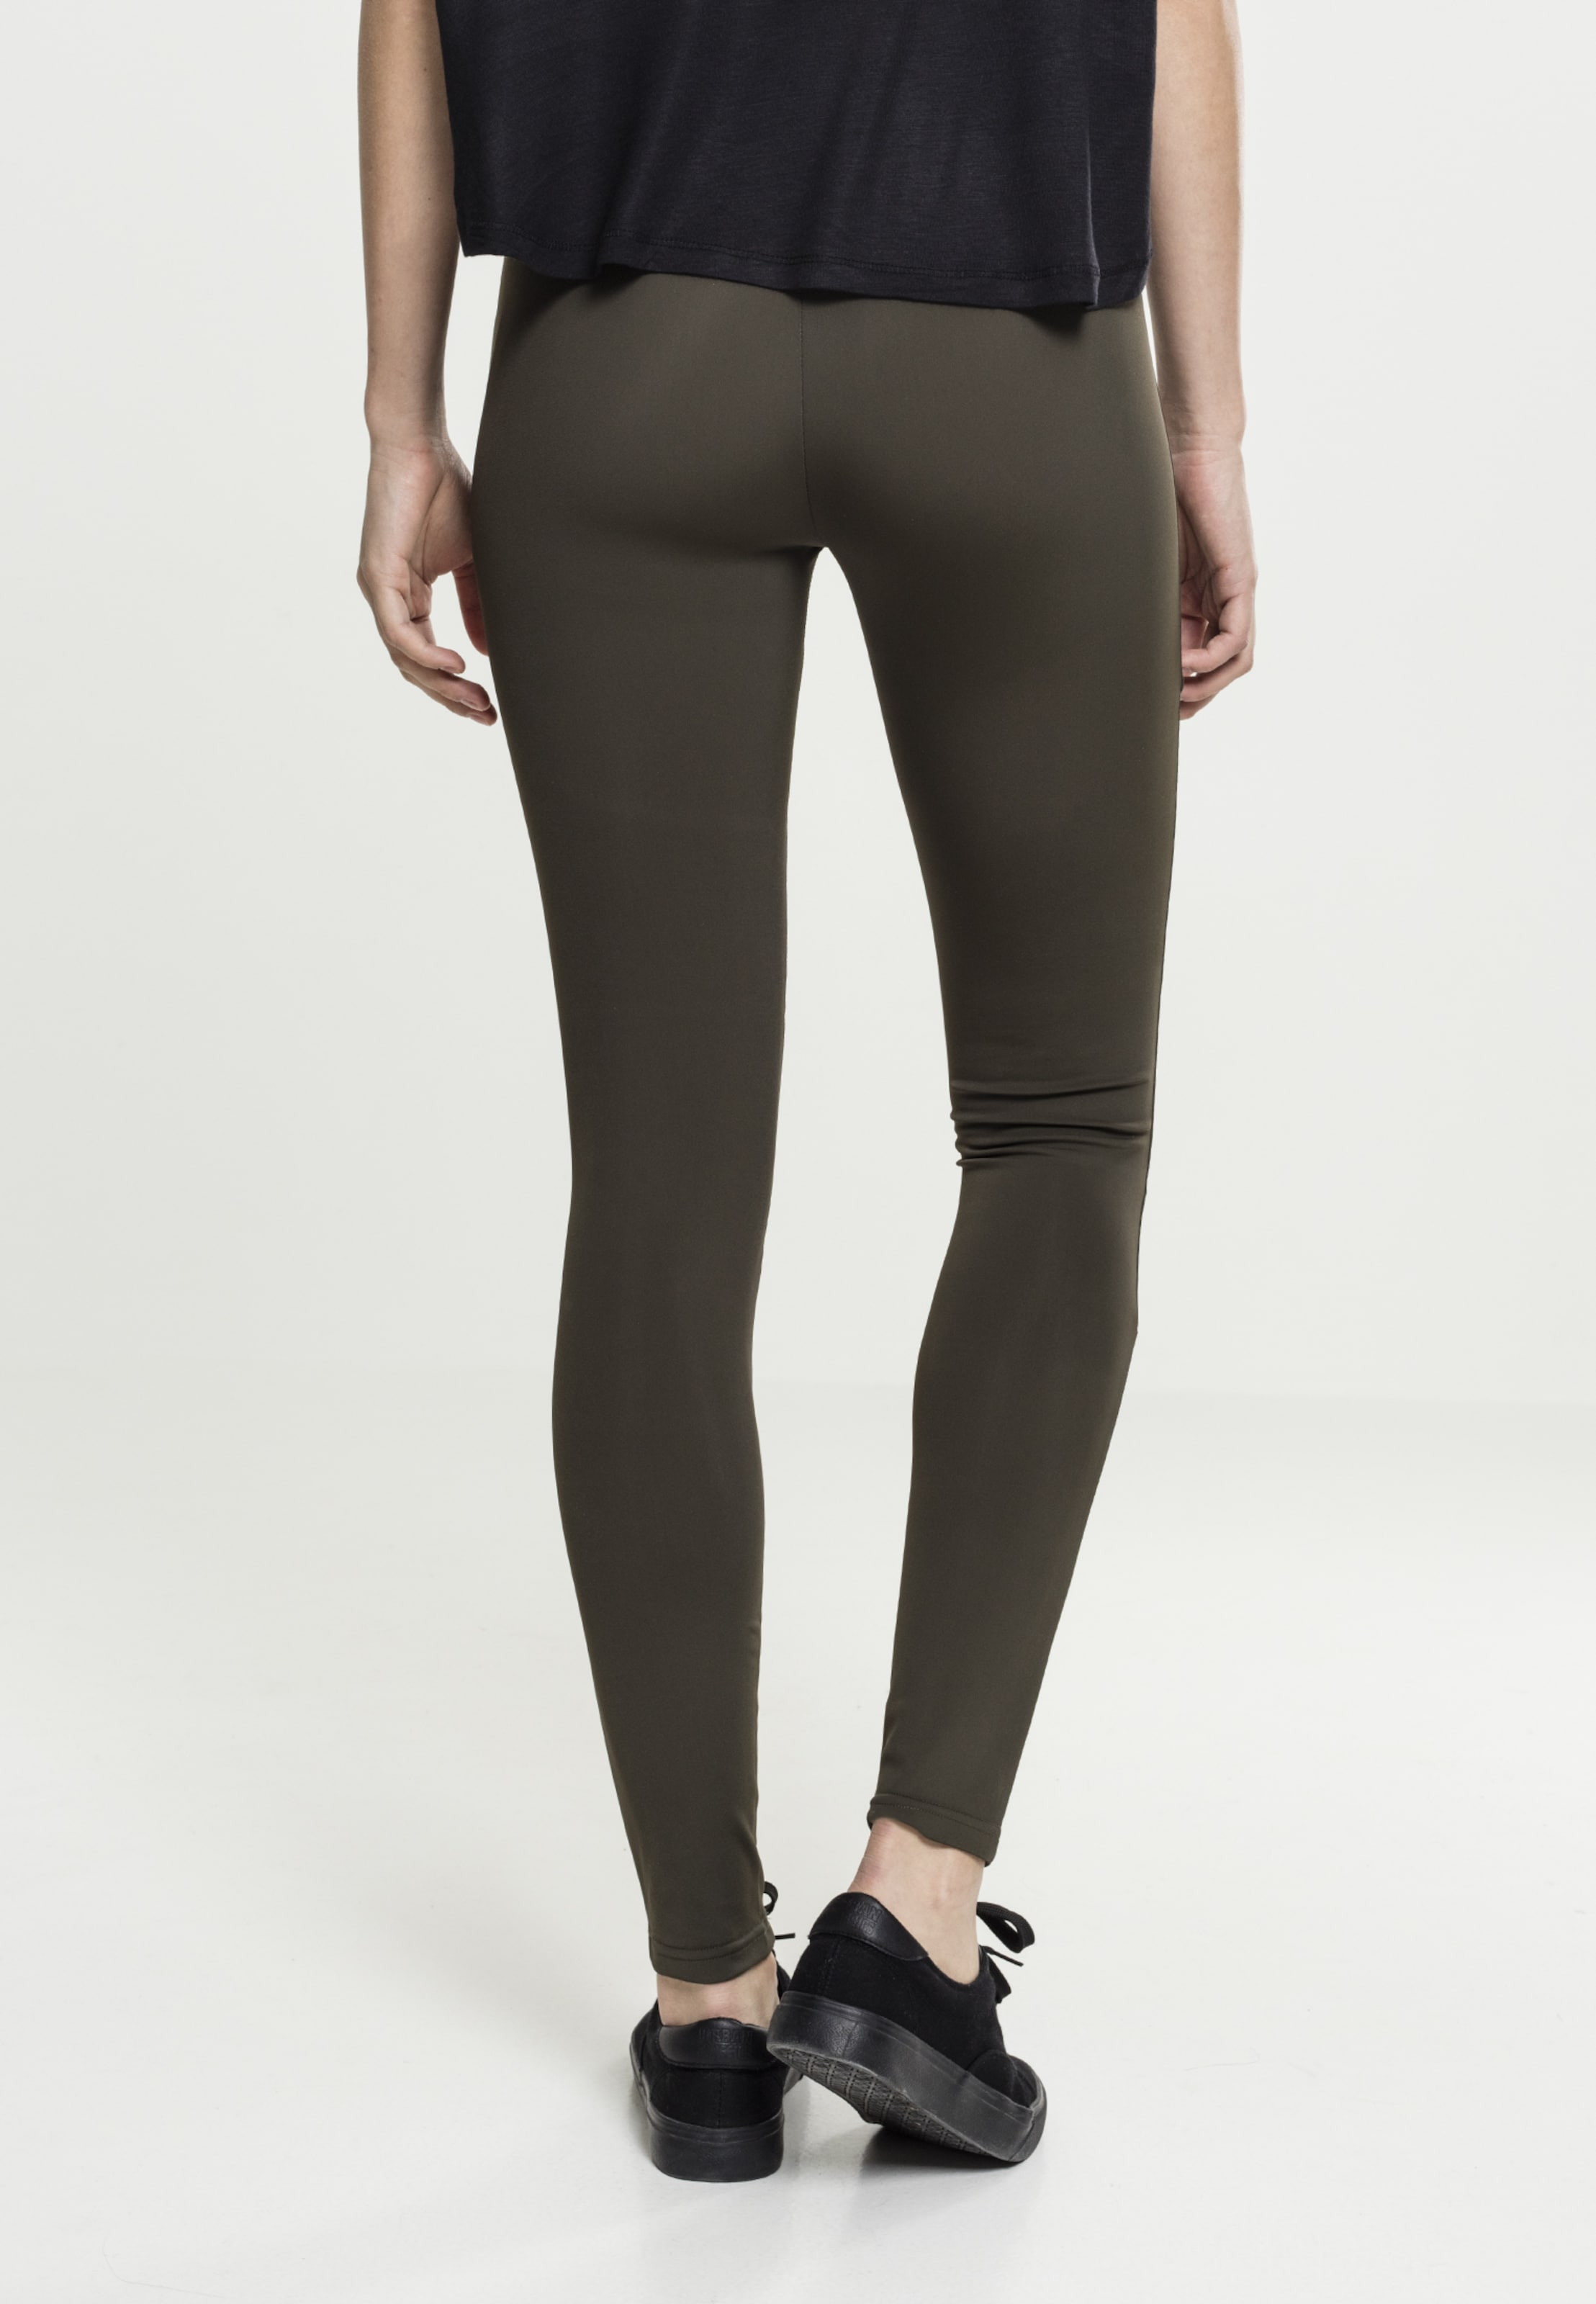 In Classics Oliv Mech' 'ladies Leggins Tech Urban QtdBsrxohC